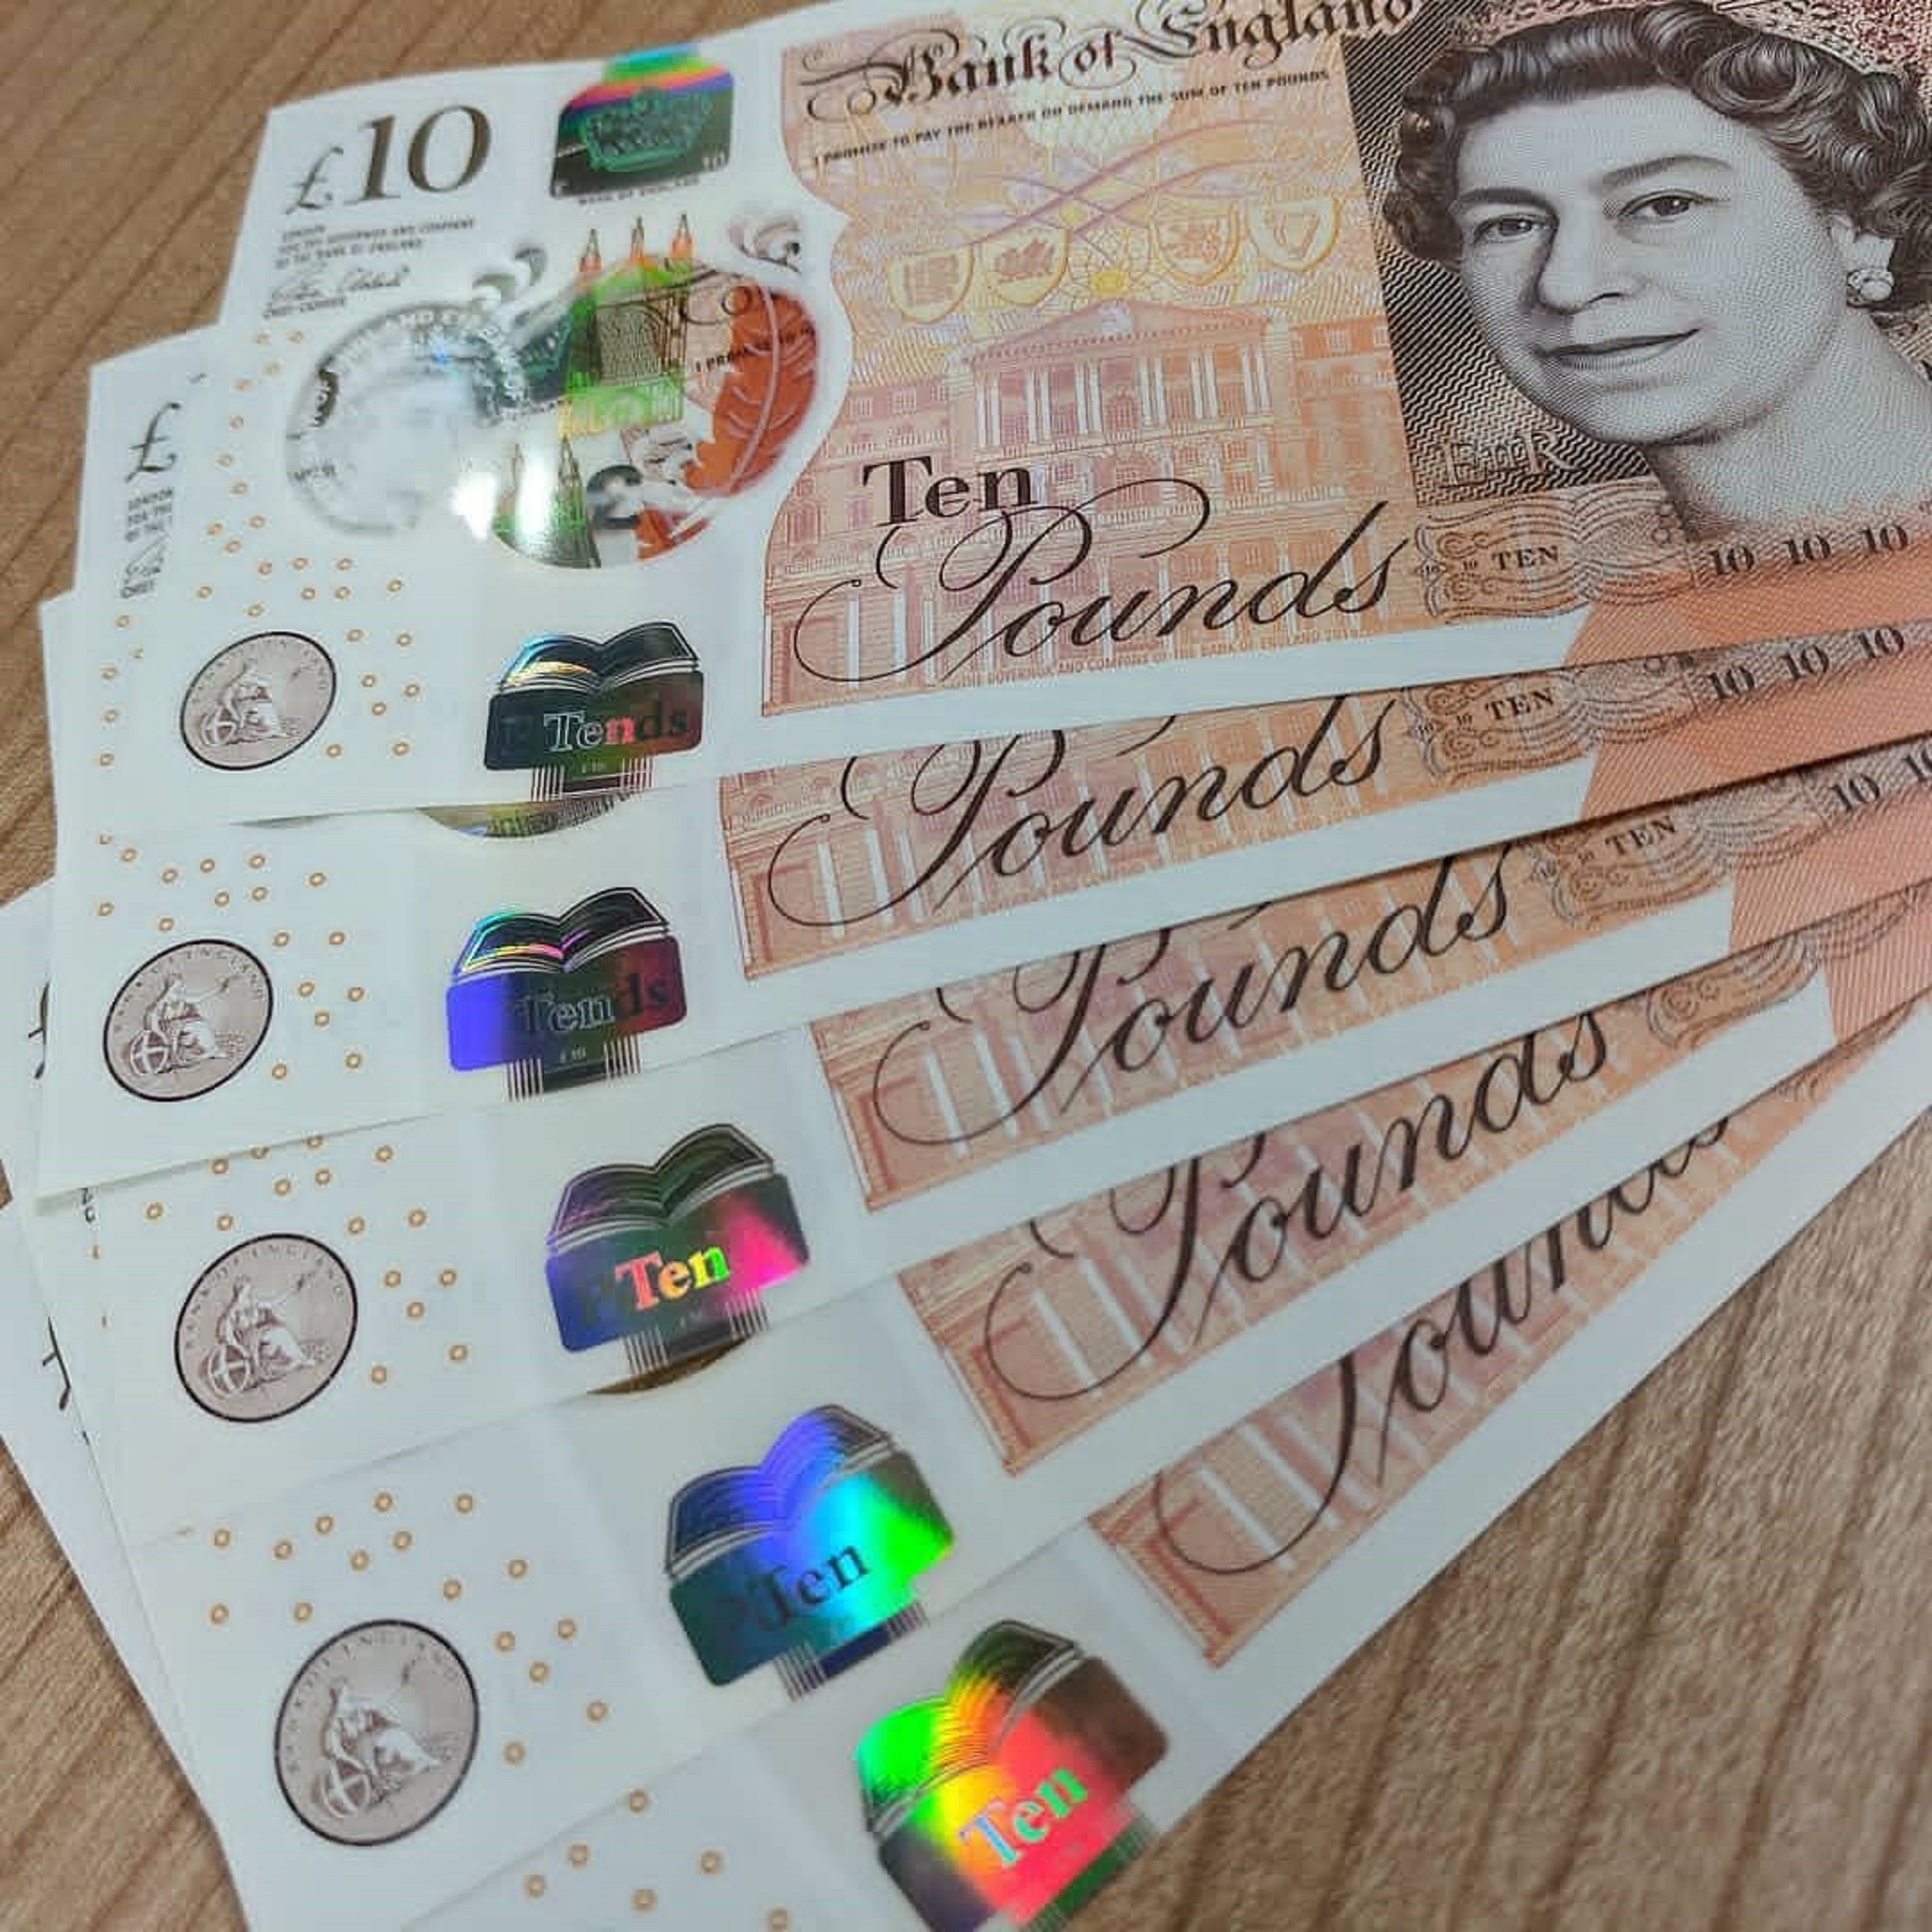 Where to buy counterfeit pounds in UK